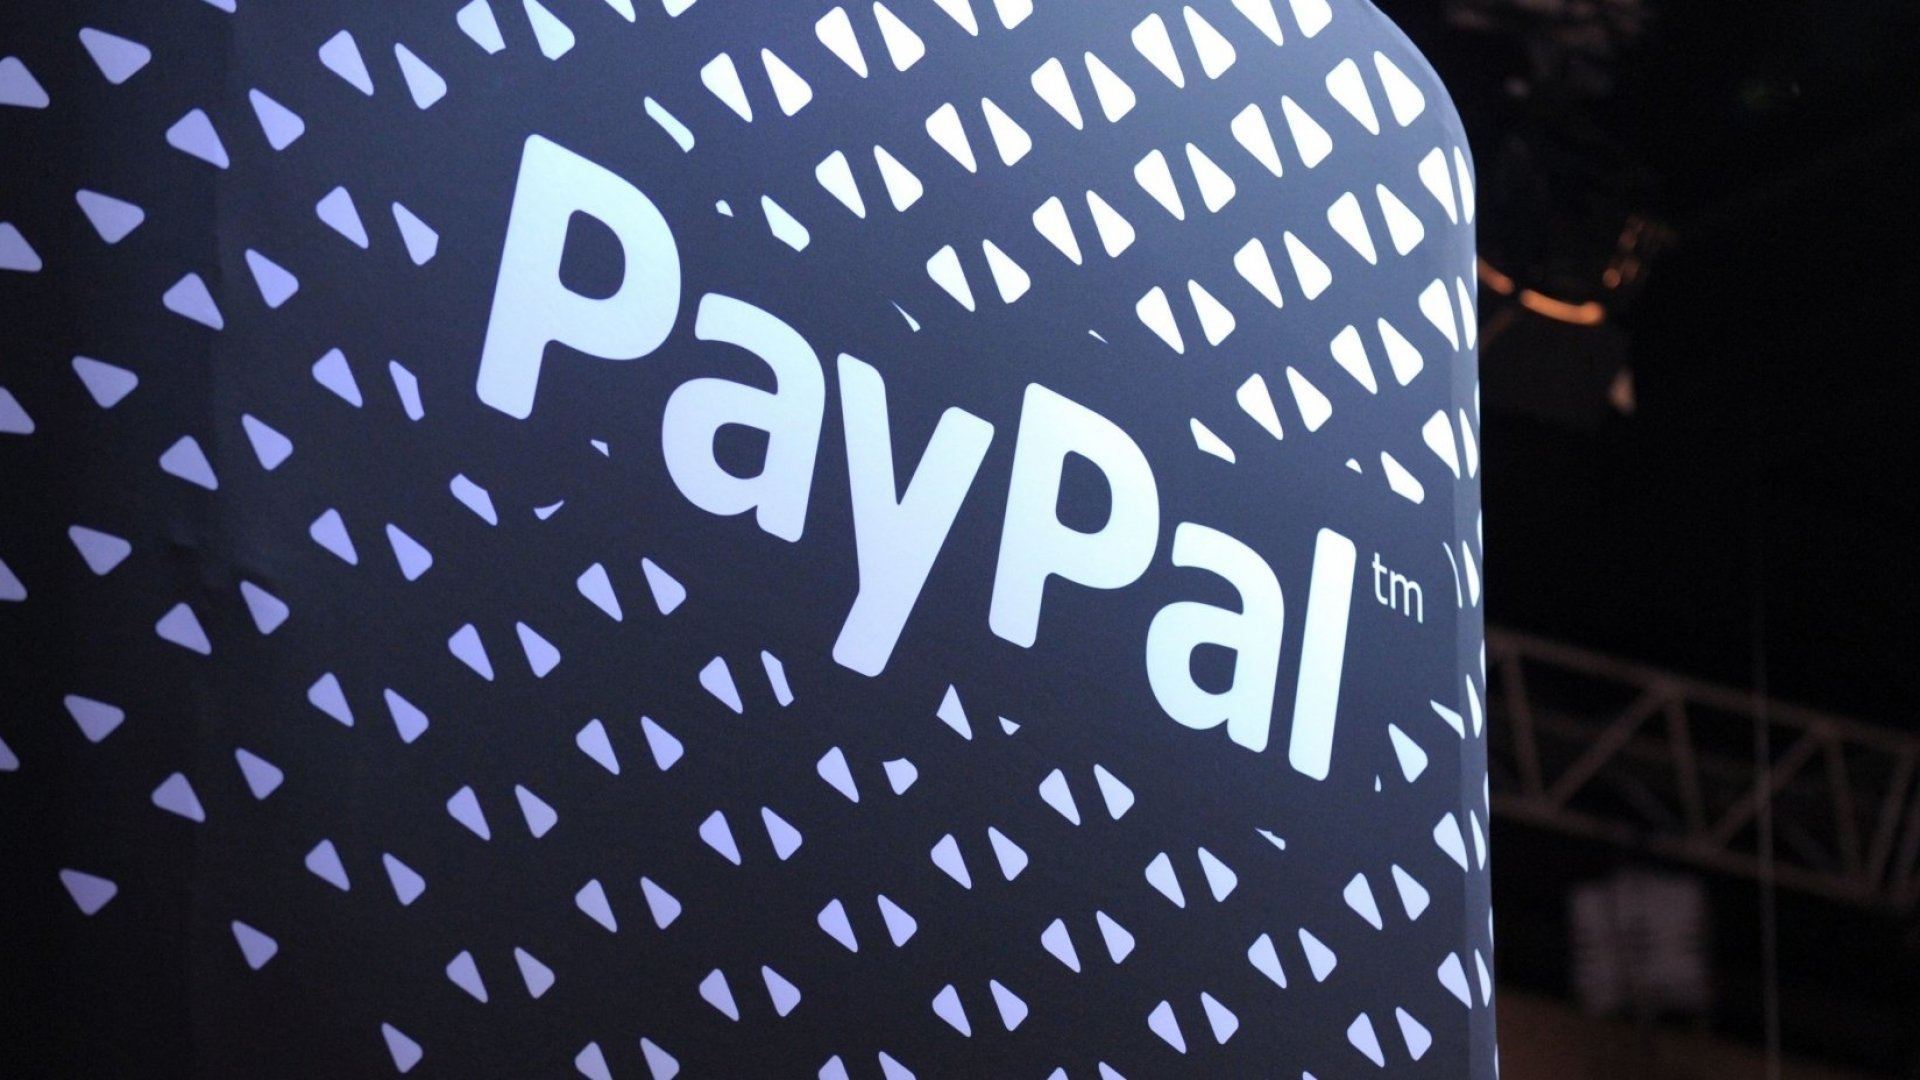 PayPal Just Realized a Truly Horrible Group Was Using PayPal. Here's the Surprising Way PayPal Responded